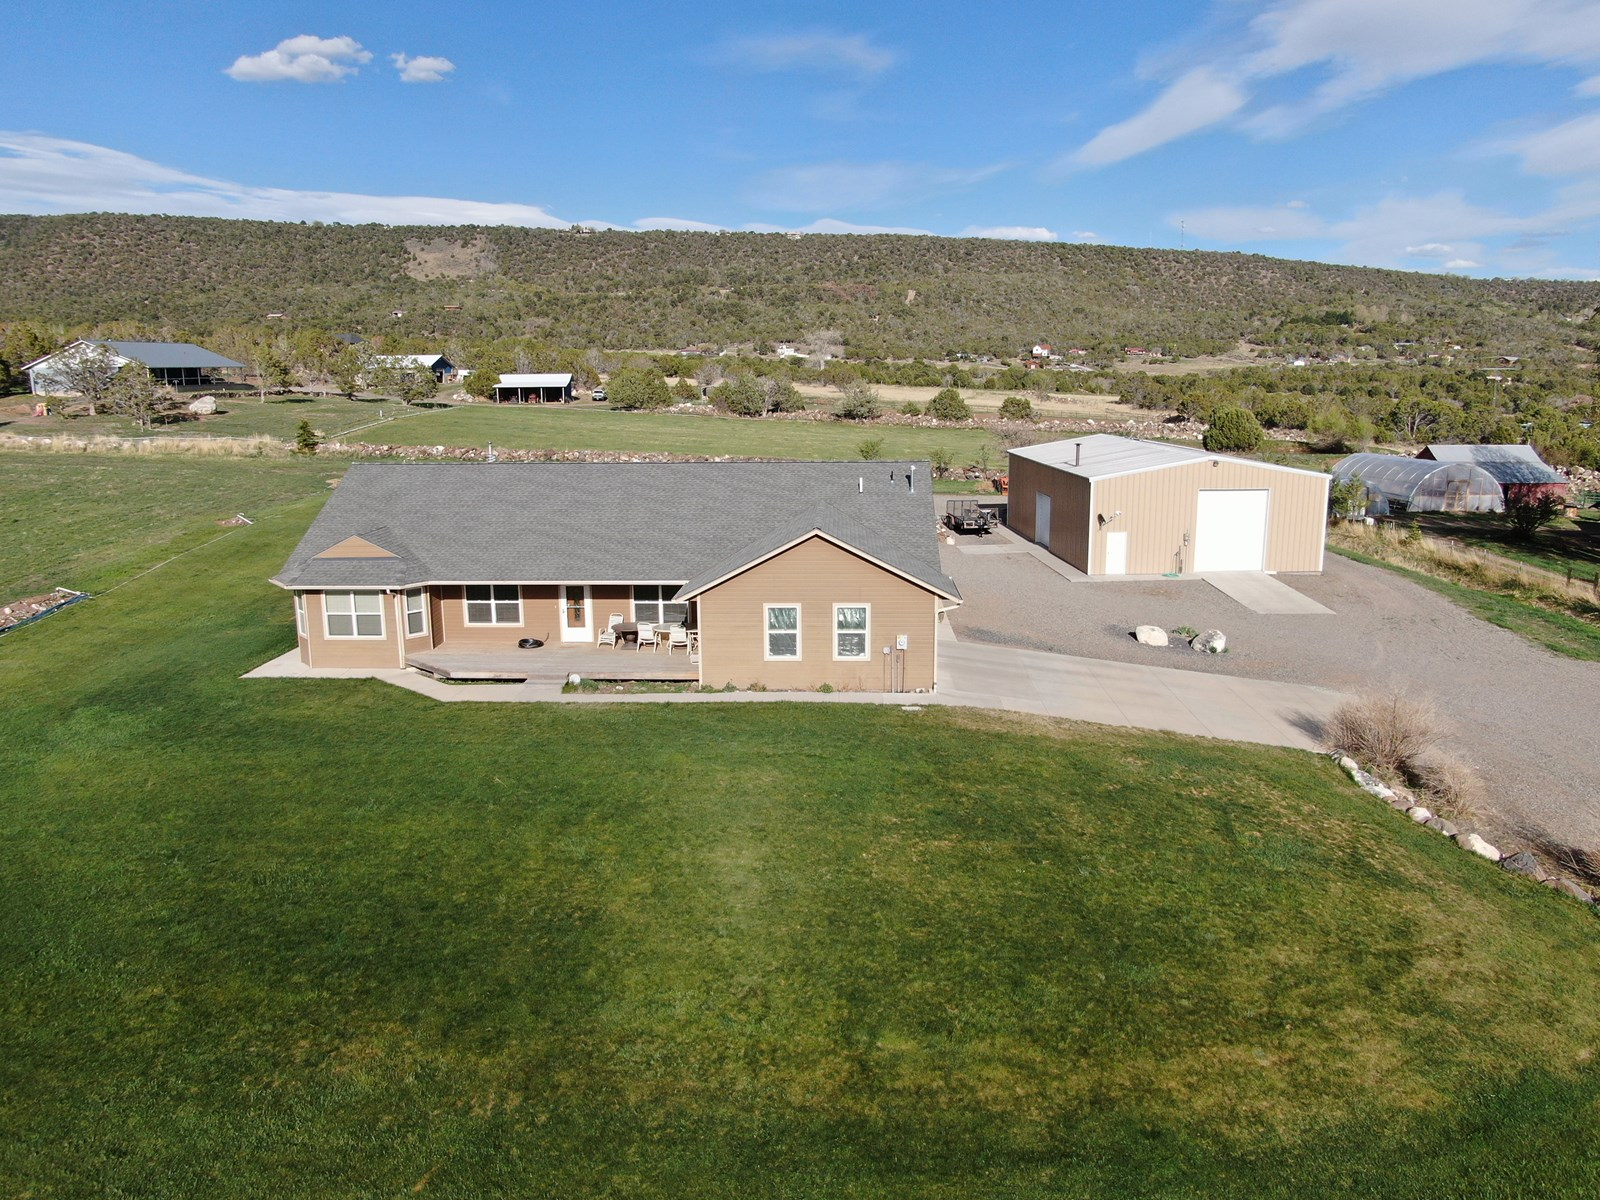 Cedaredge Colorado home for sale on country acreage w shop